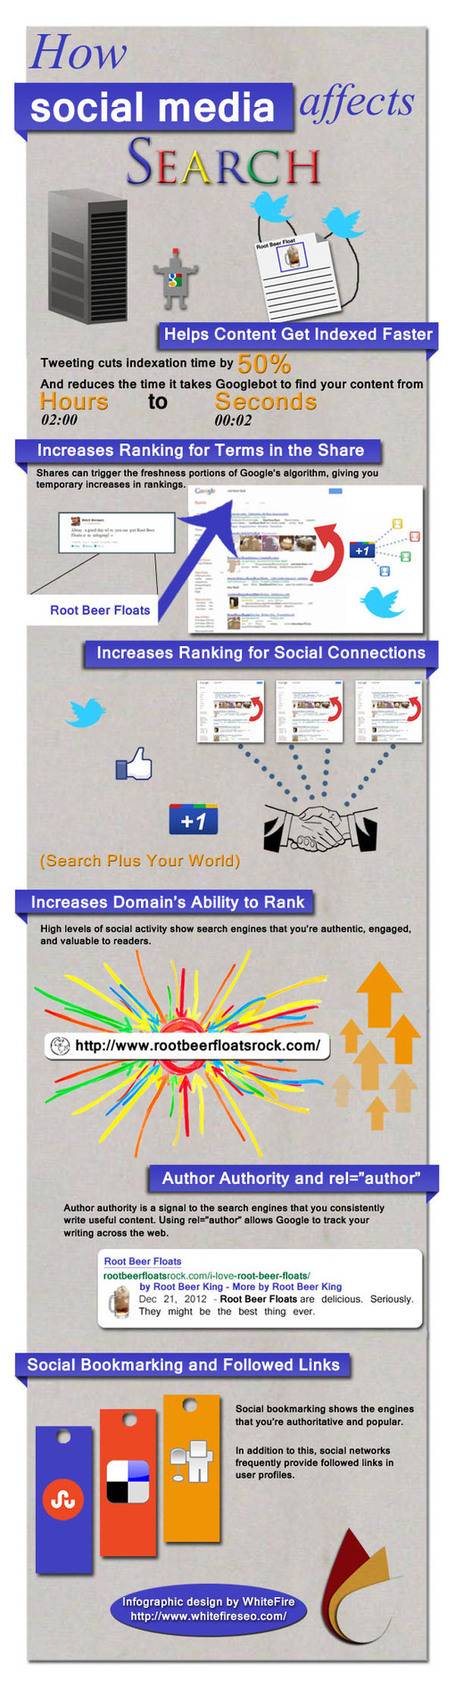 How Social Media Impacts SEO and Site Ranking: infographic | Social Media sites | Scoop.it